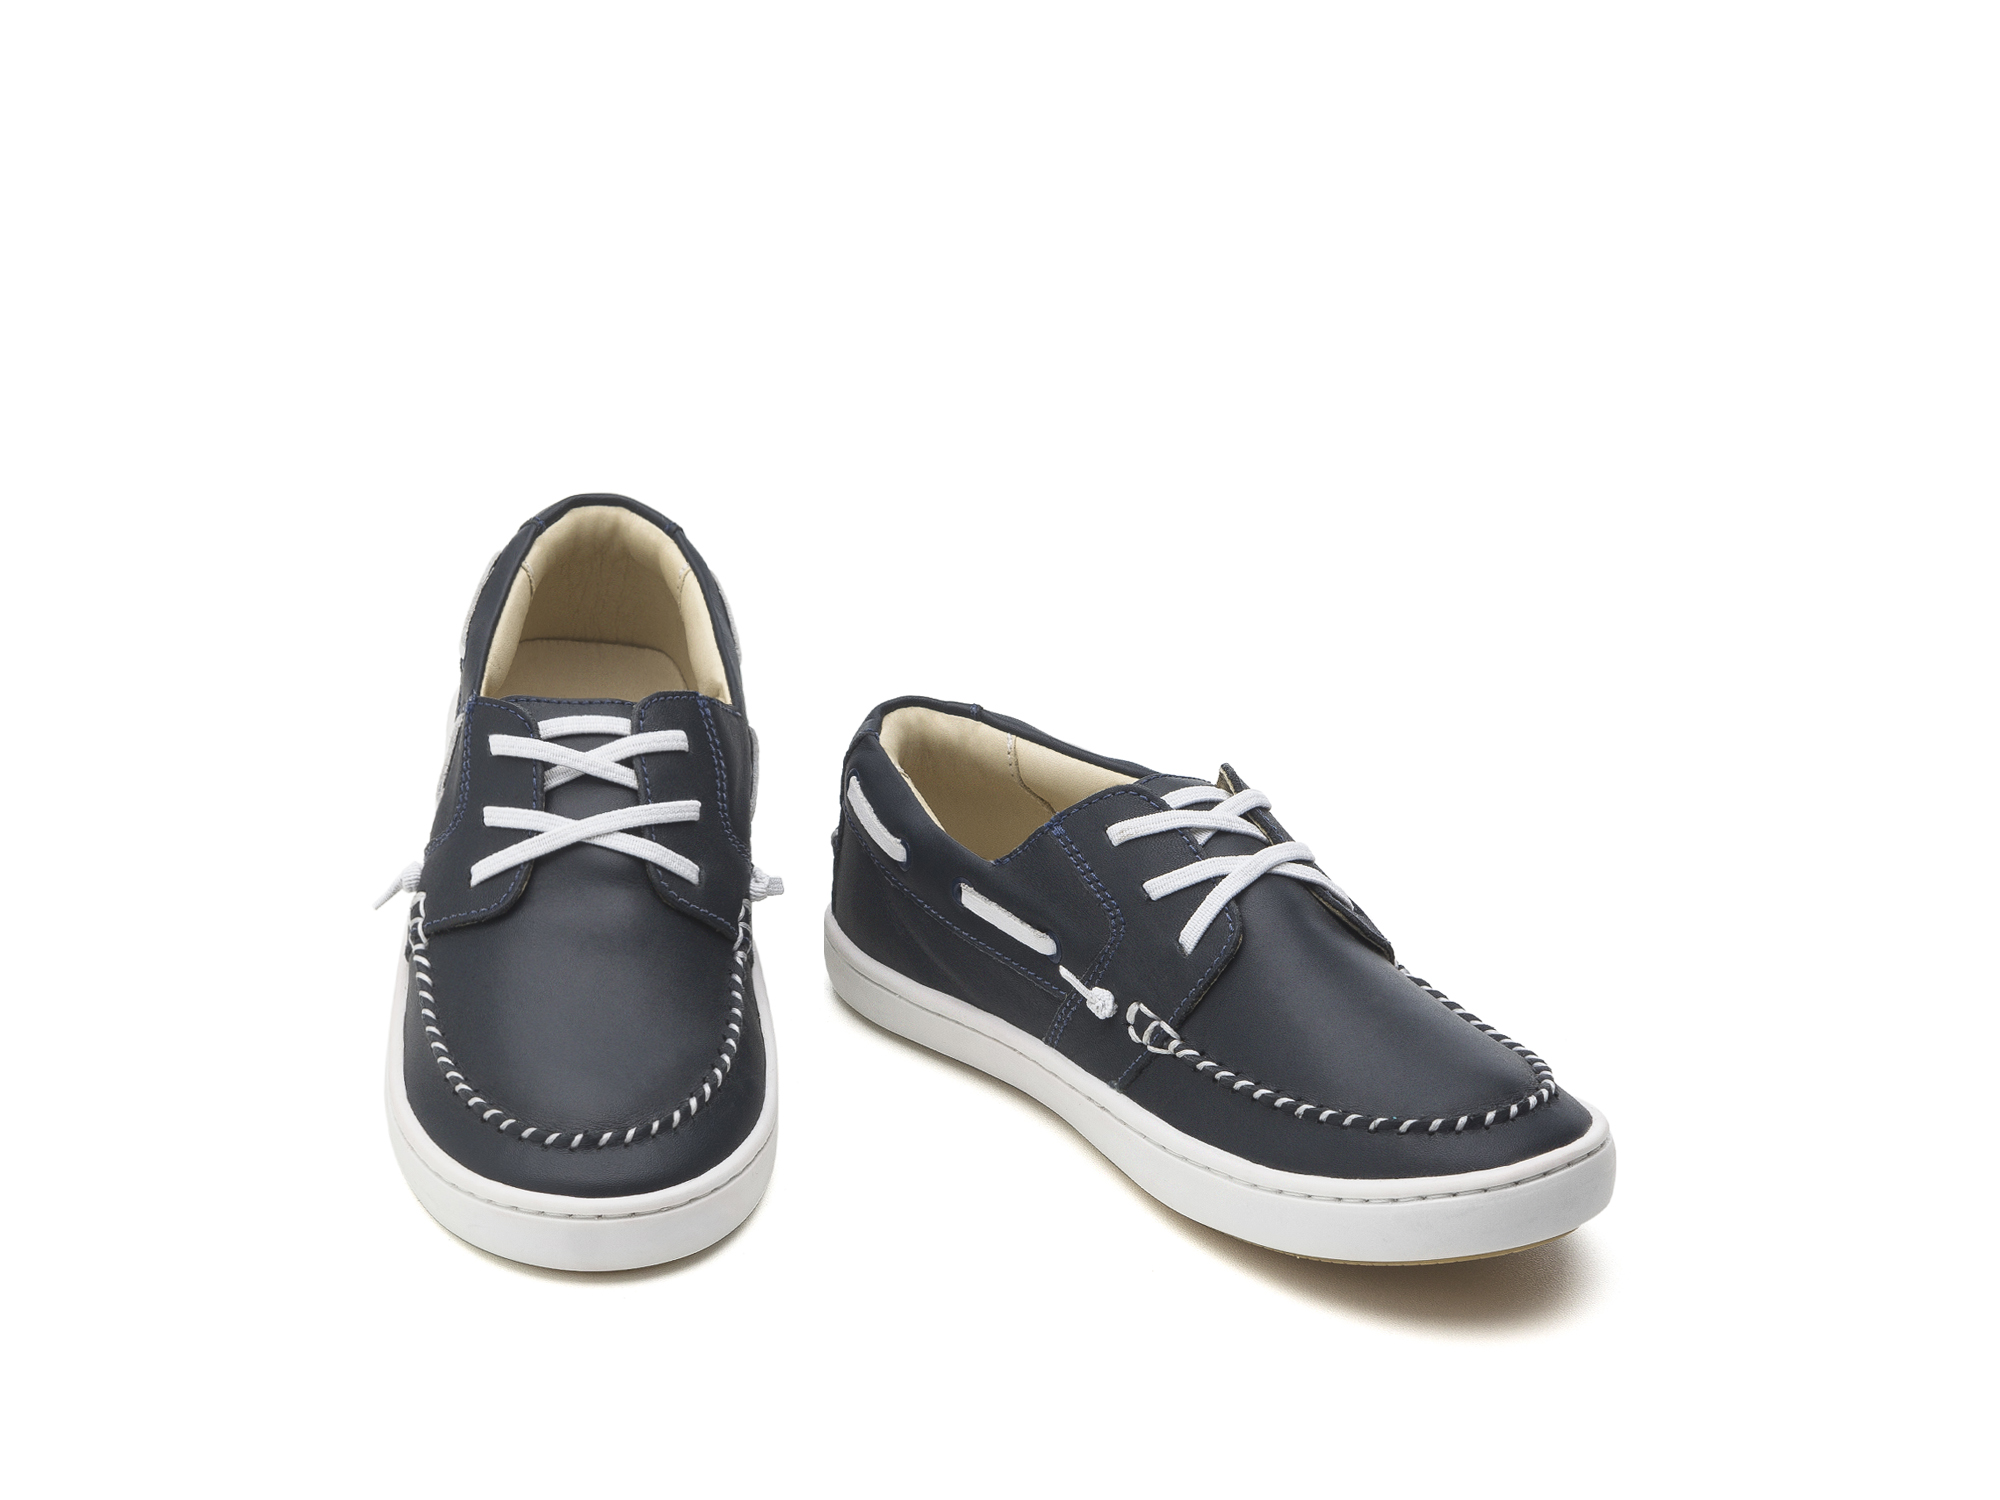 Tênis Snap Navy/ White Junior 4 à 8 anos - 2